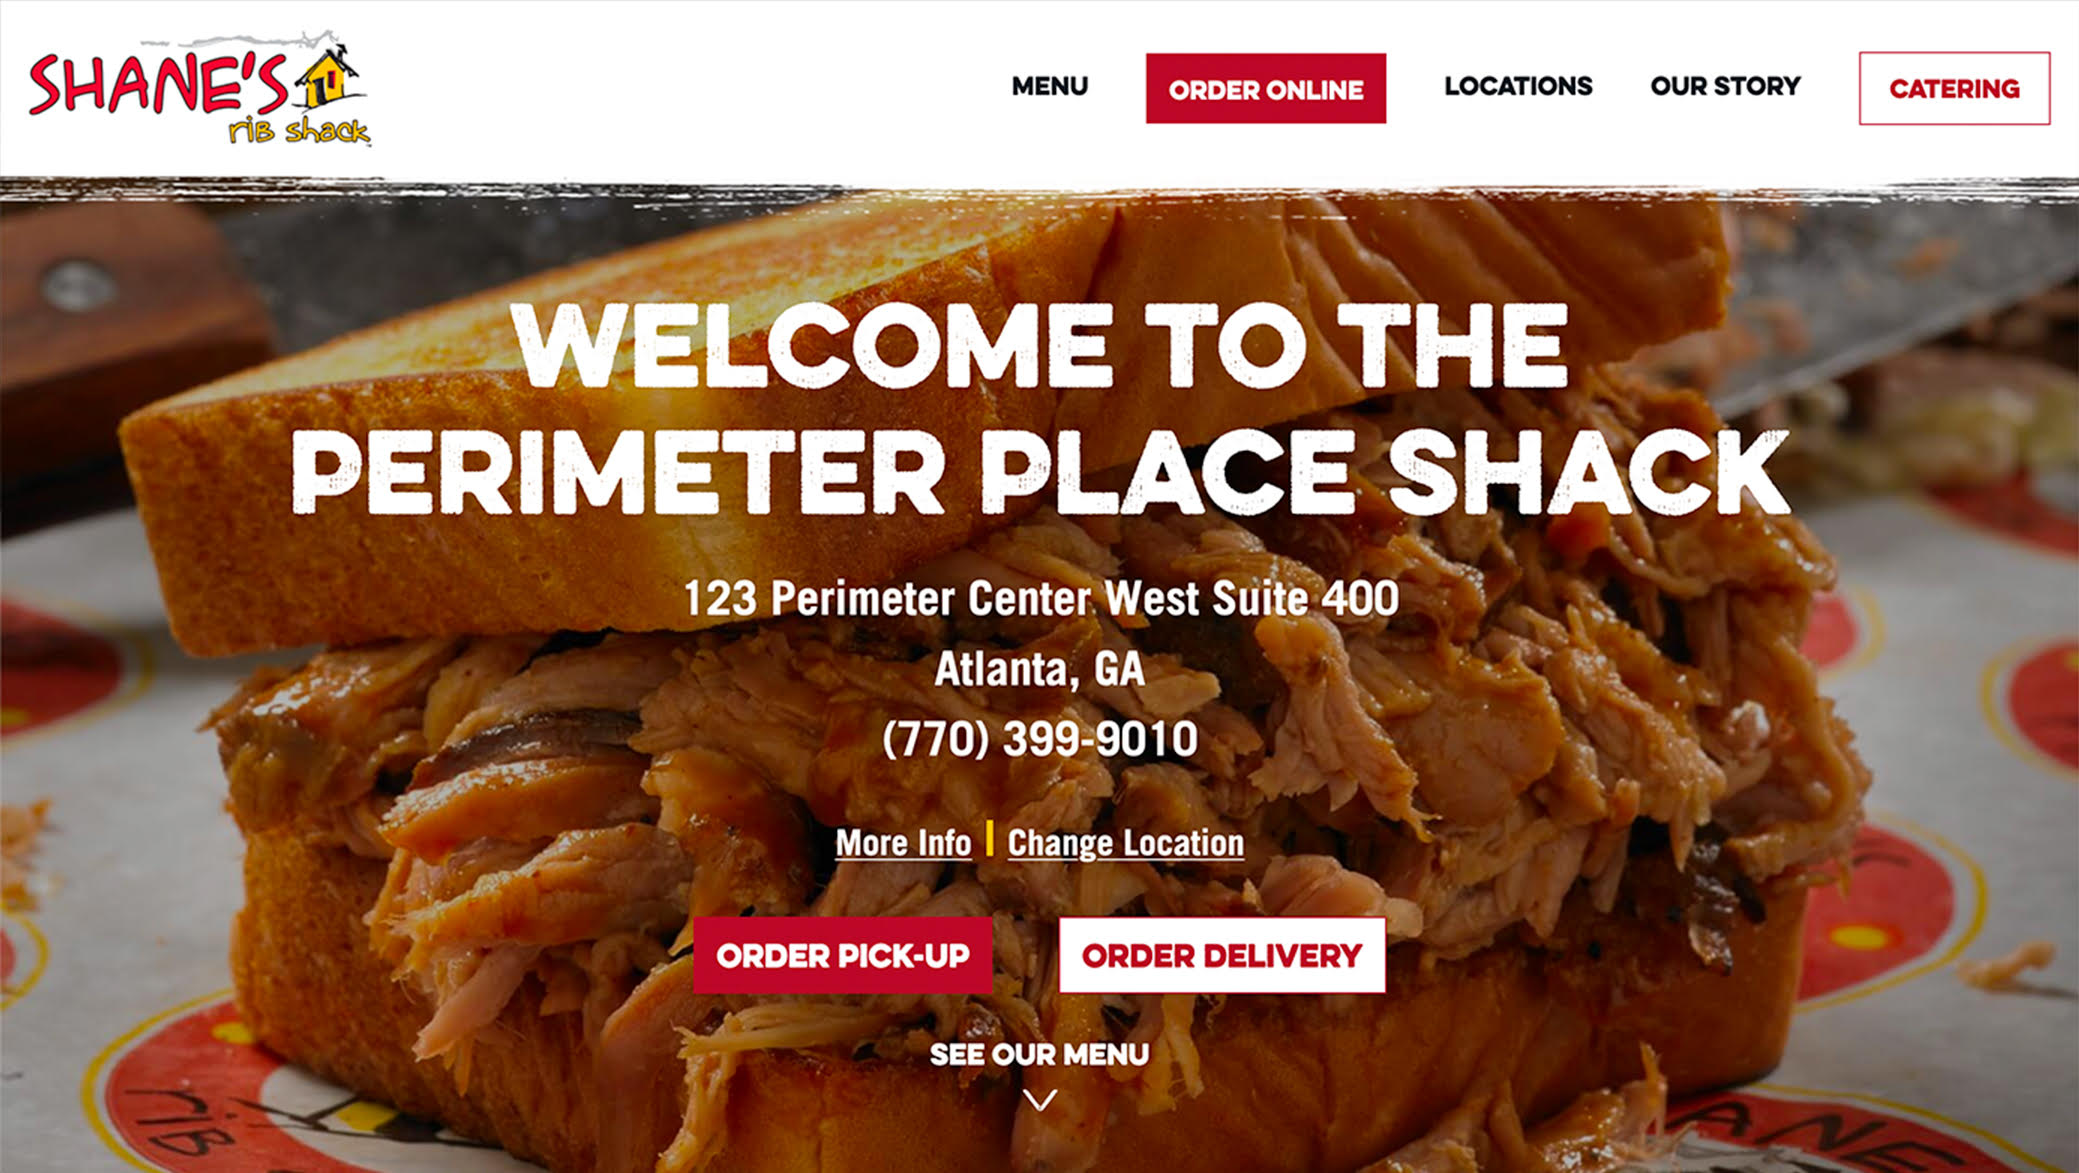 Shane's Rib Shack Company | The Creative Momentum - Web Design & Digital Marketing